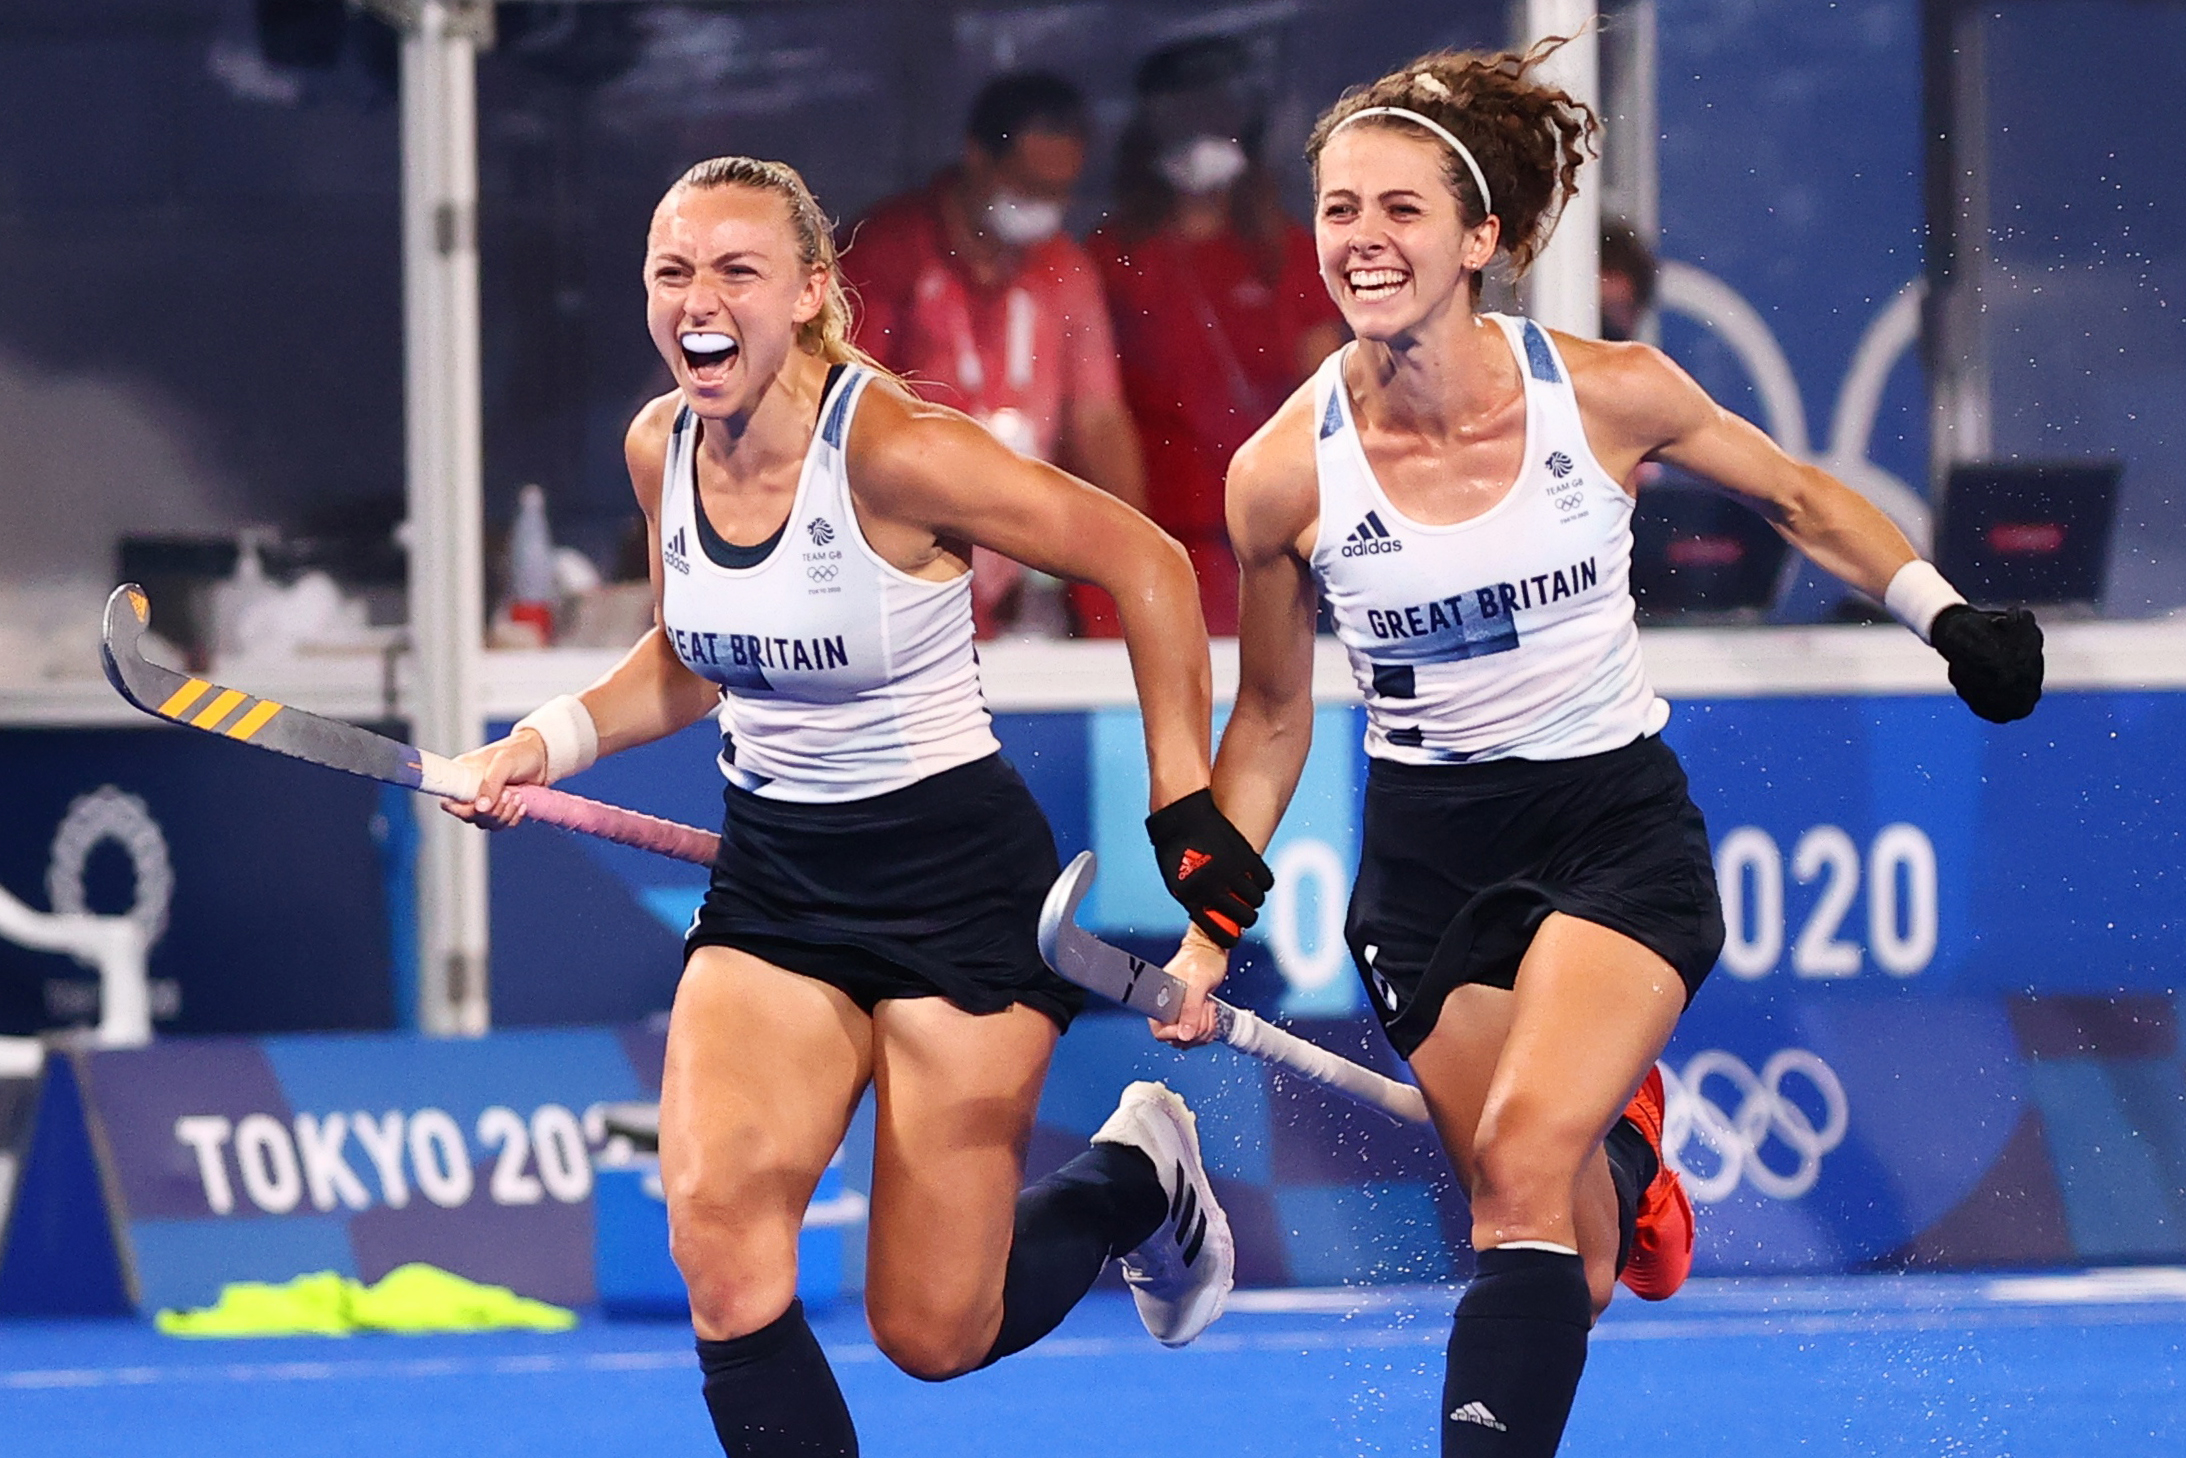 Tokyo 2020 Olympics - Hockey - Women - Quarterfinal - Spain v Britain - Oi Hockey Stadium, Tokyo, Japan - August 2, 2021. Players of Britain celebrate after winning their match by penalty shoot-out. REUTERS/Kim Hong-Ji